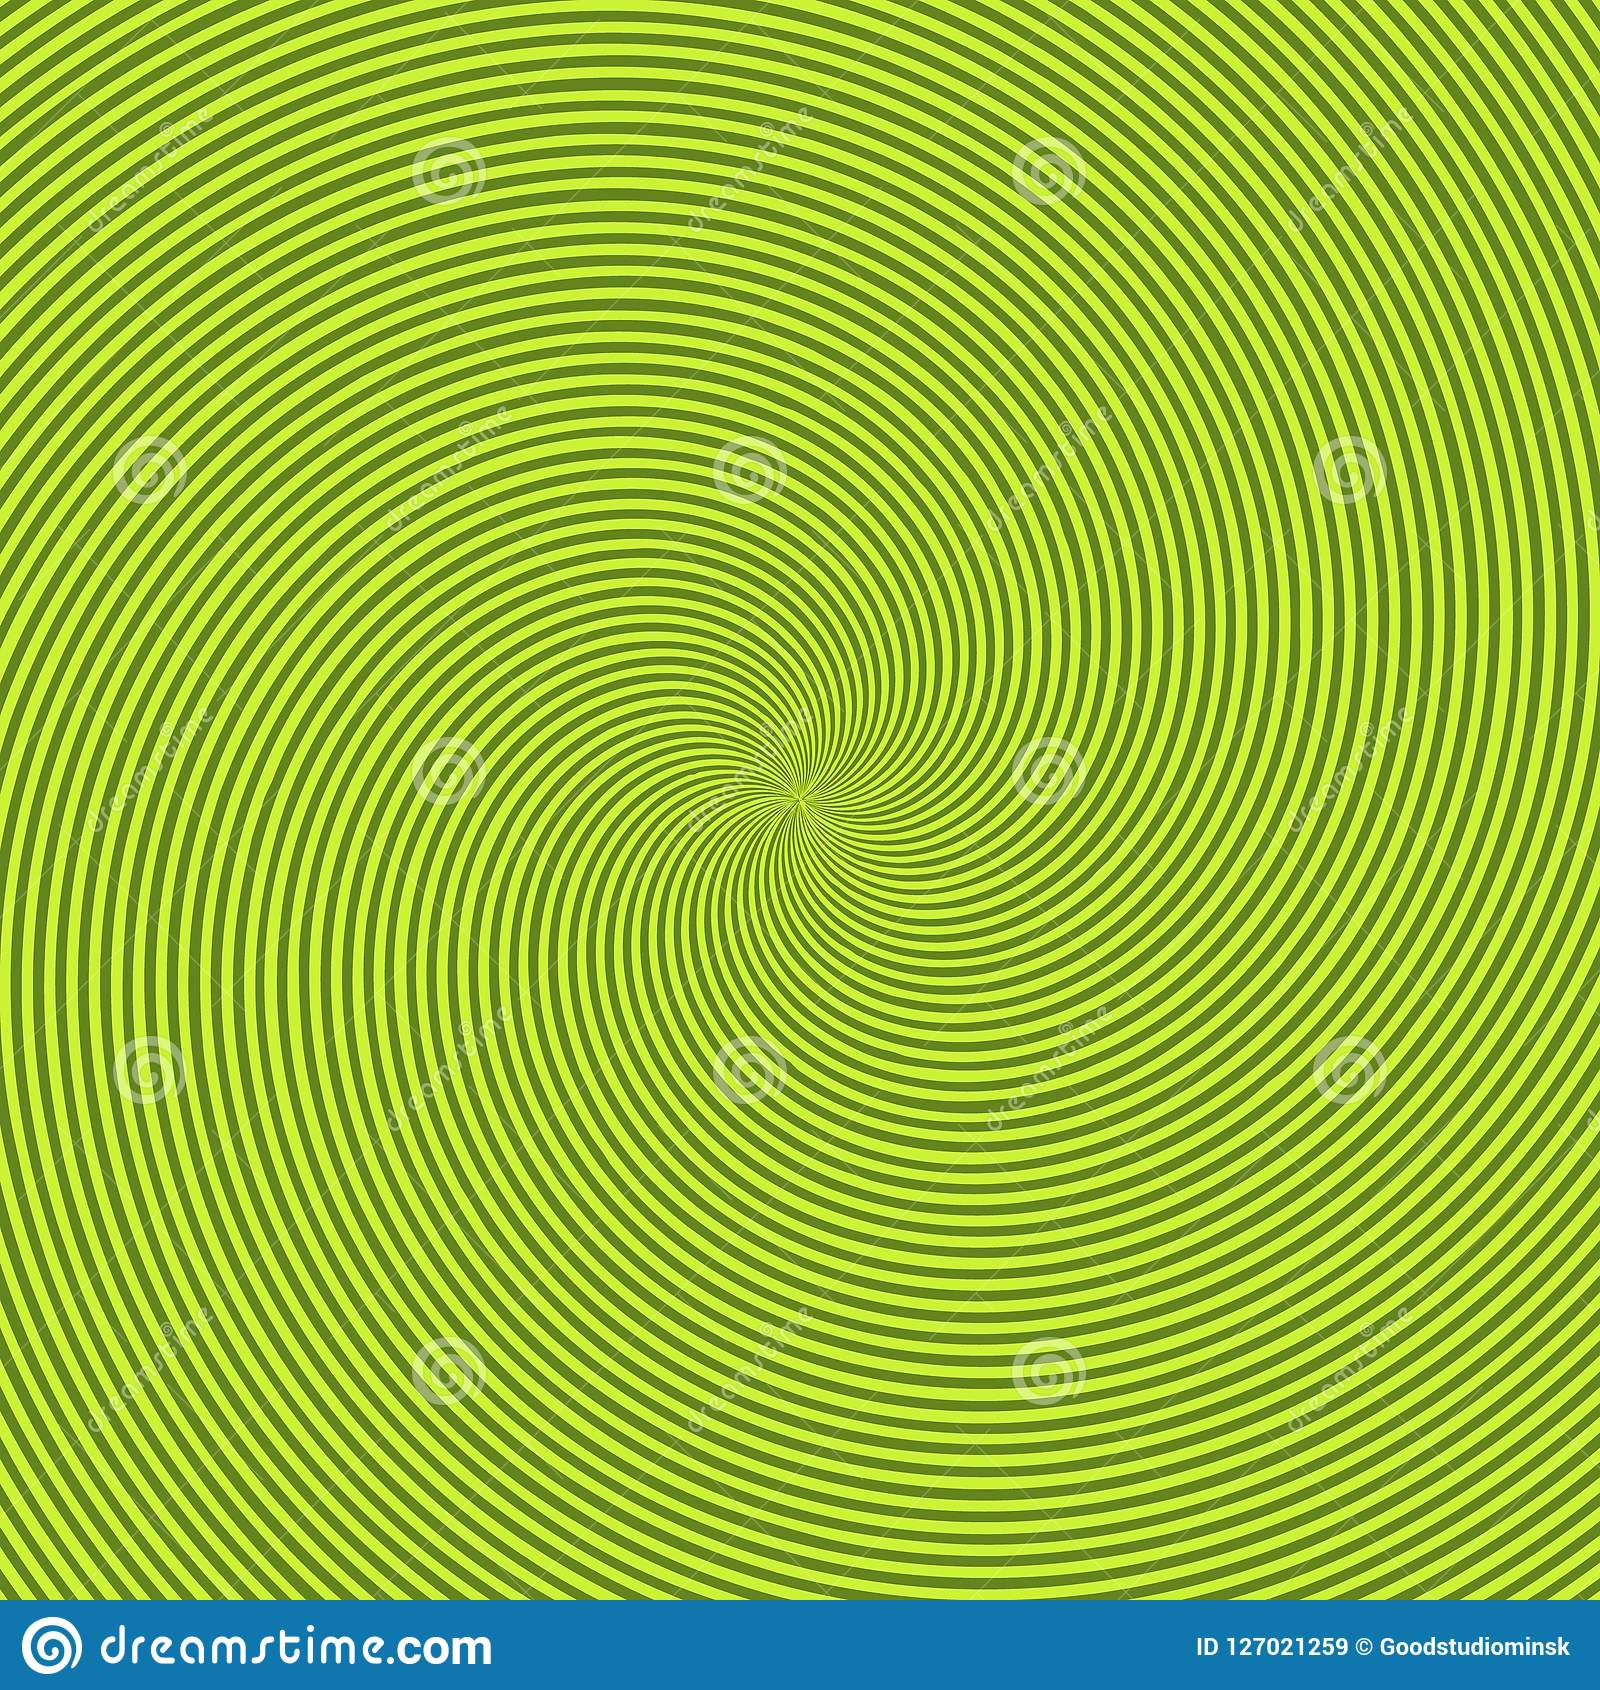 Green radiant background with circular swirl, helix or twist. Backdrop with round optical illusion, hallucination